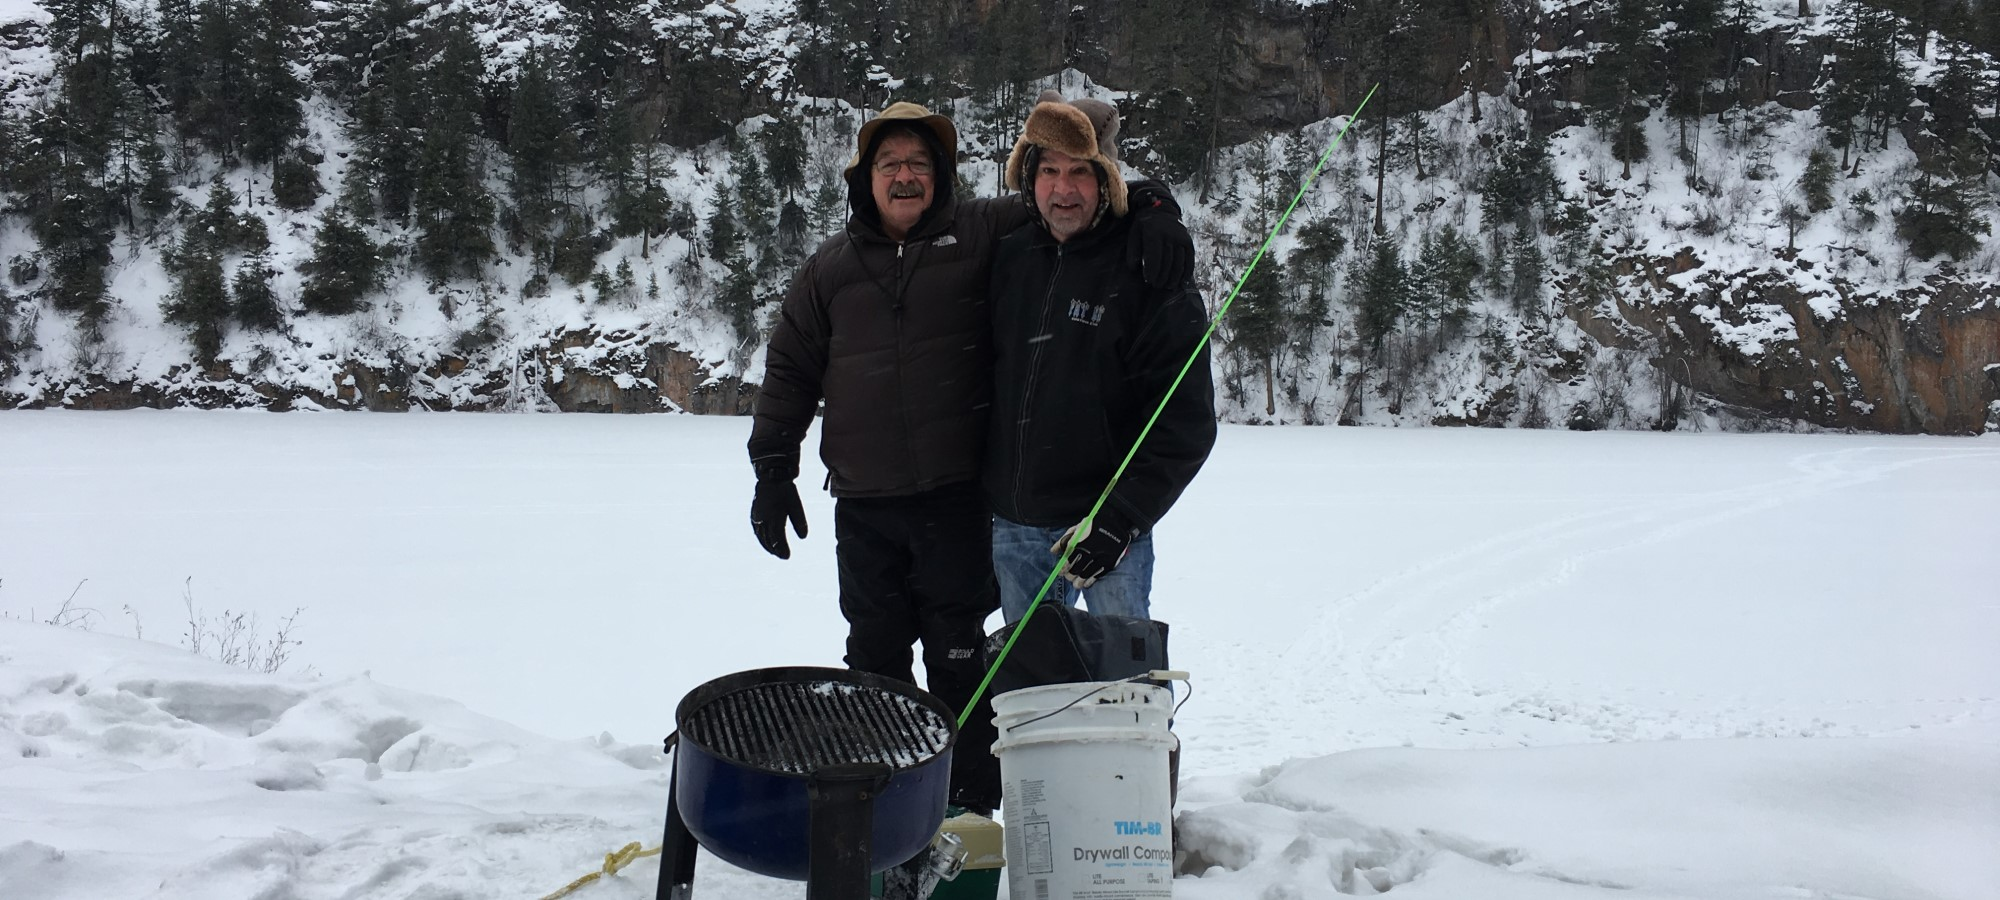 Get Hooked on Ice Fishing at Yellow Lake Near Penticton, BC